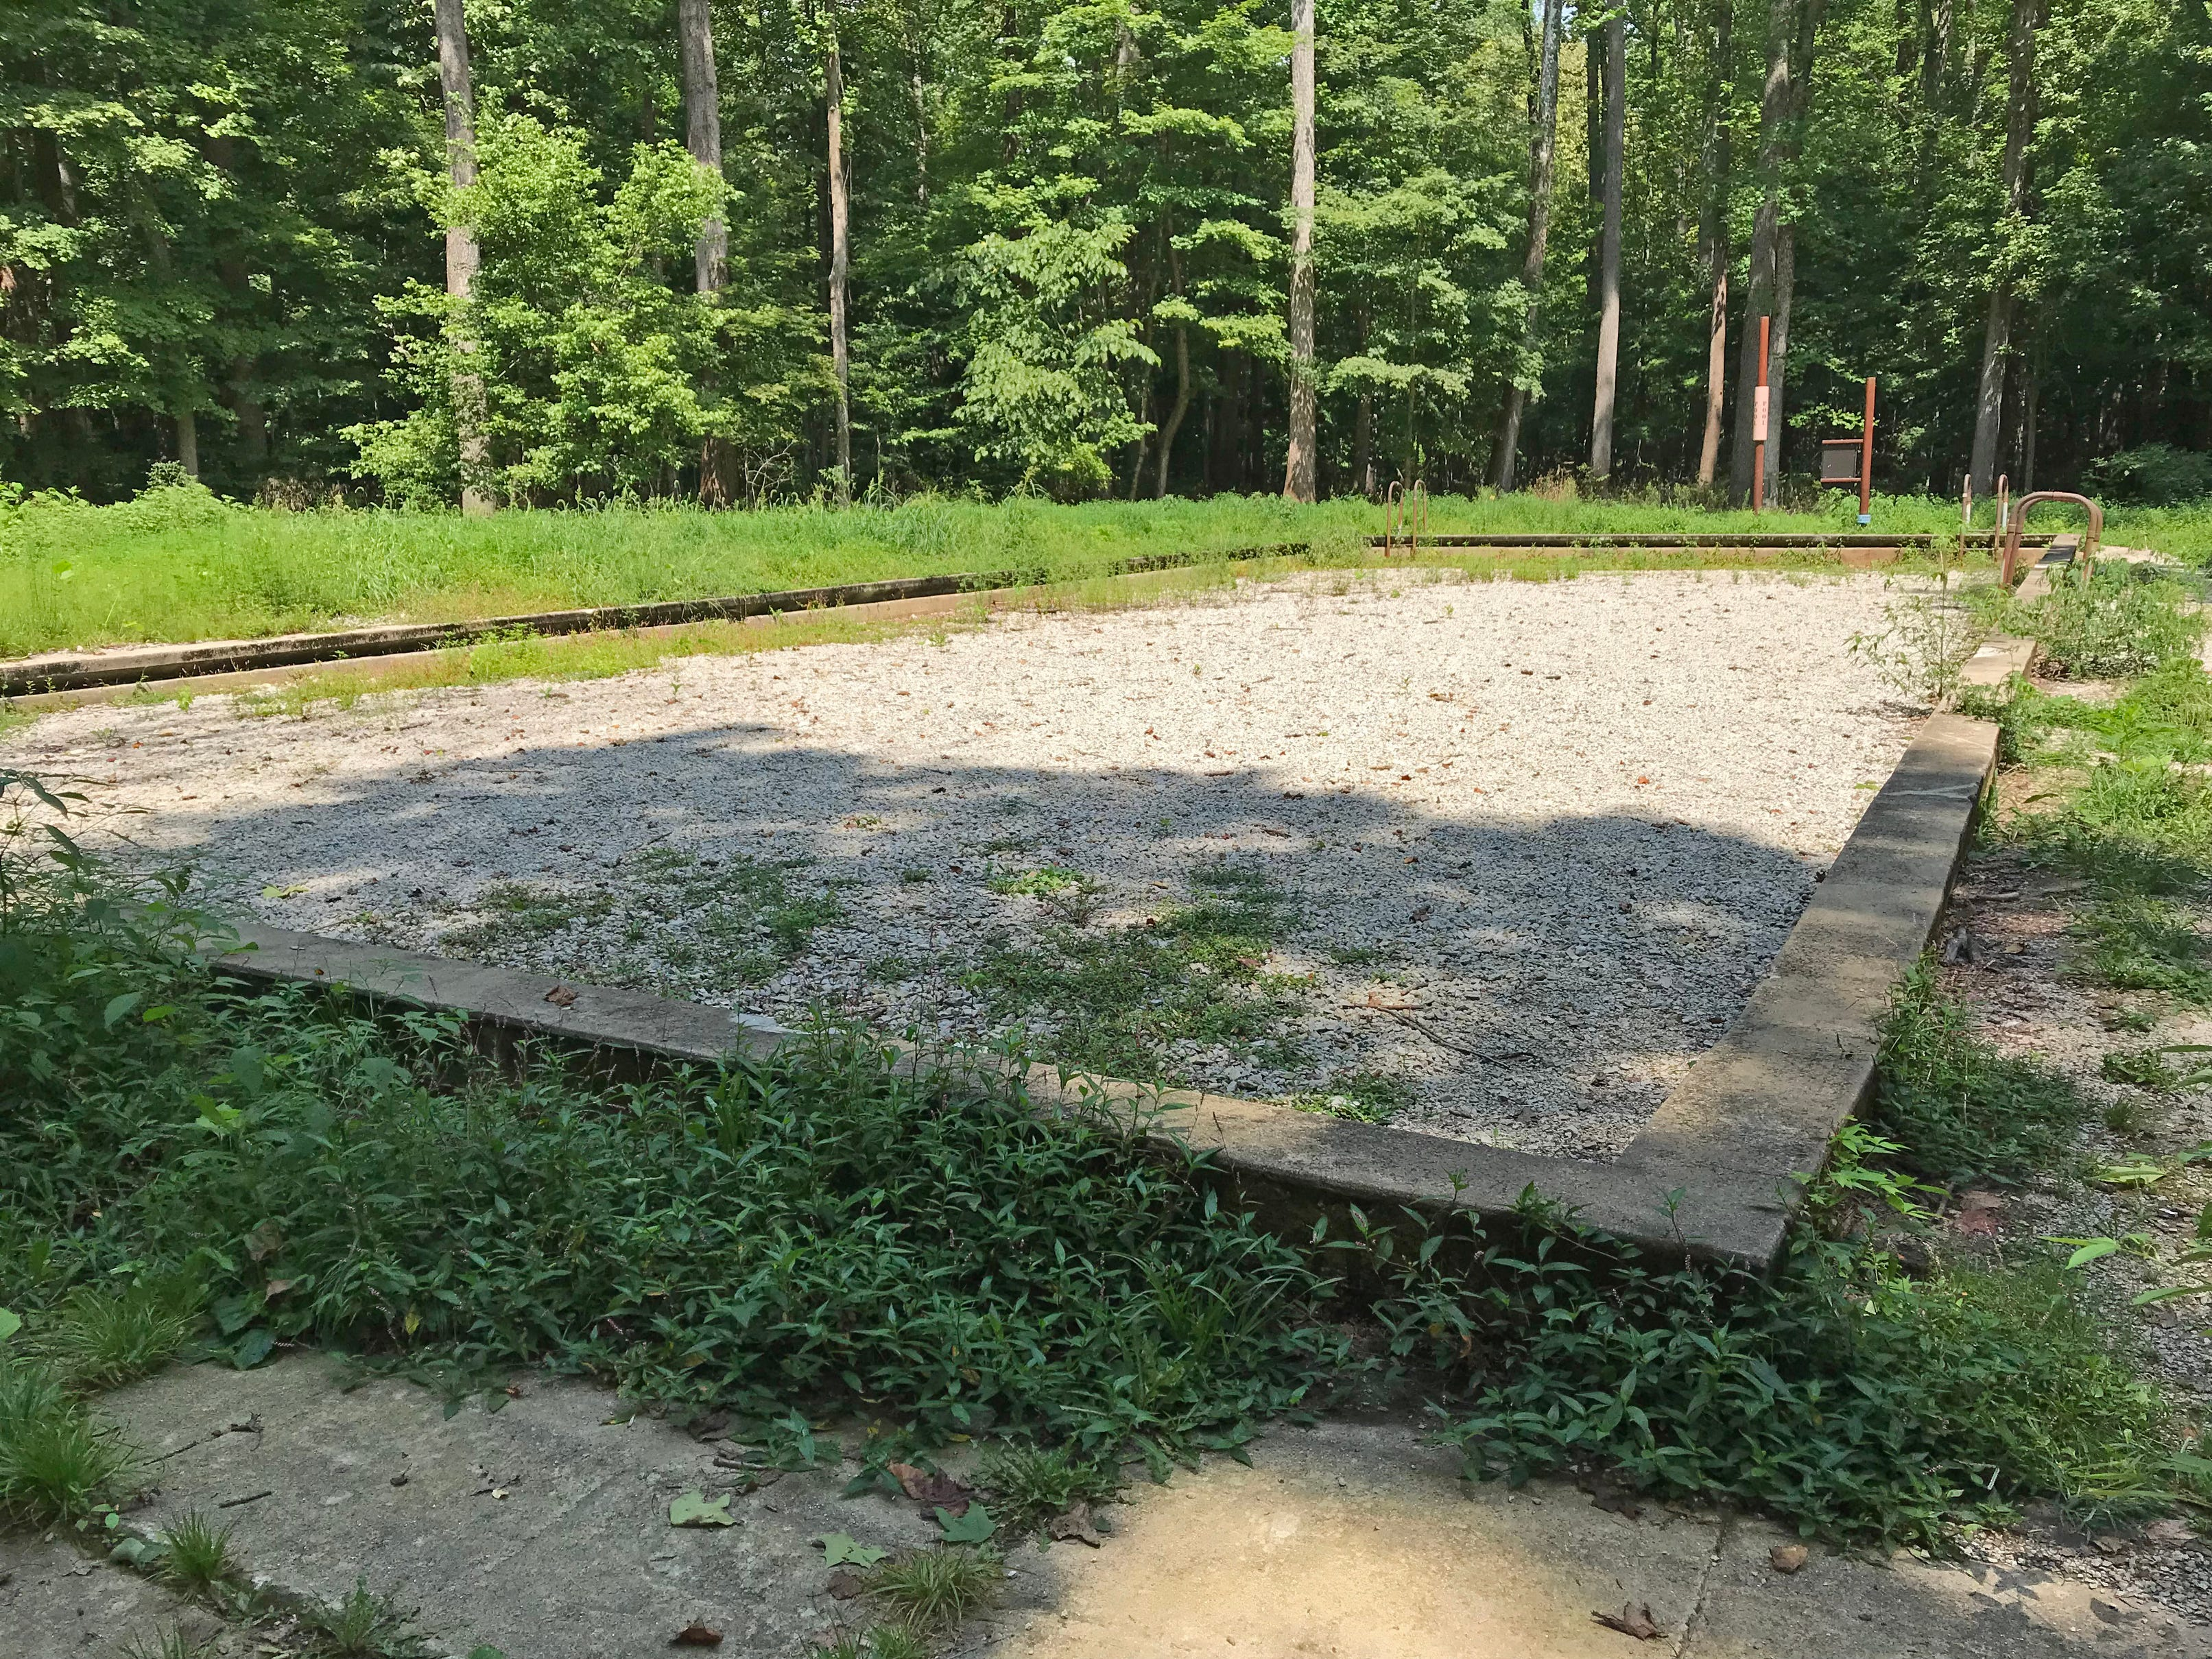 When the Indiana Department of Natural Resources took over Rose Island, the pool was filled with stagnant water and a breeding ground for mosquitos. A filter was installed and filled in with gravel,.